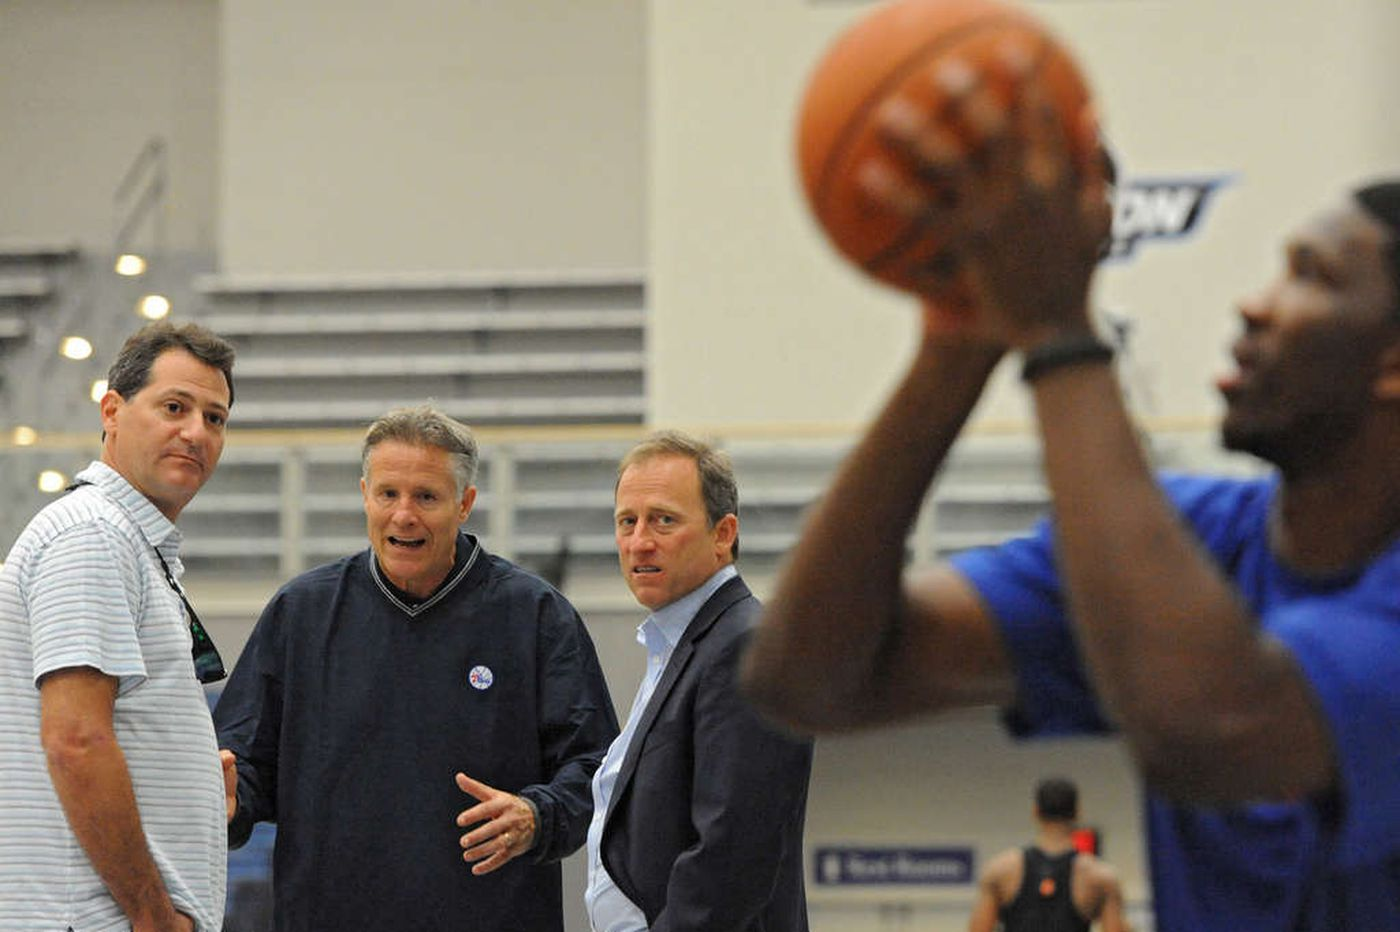 Sixers players party with the owners, which fosters insubordination toward Brett Brown | Marcus Hayes